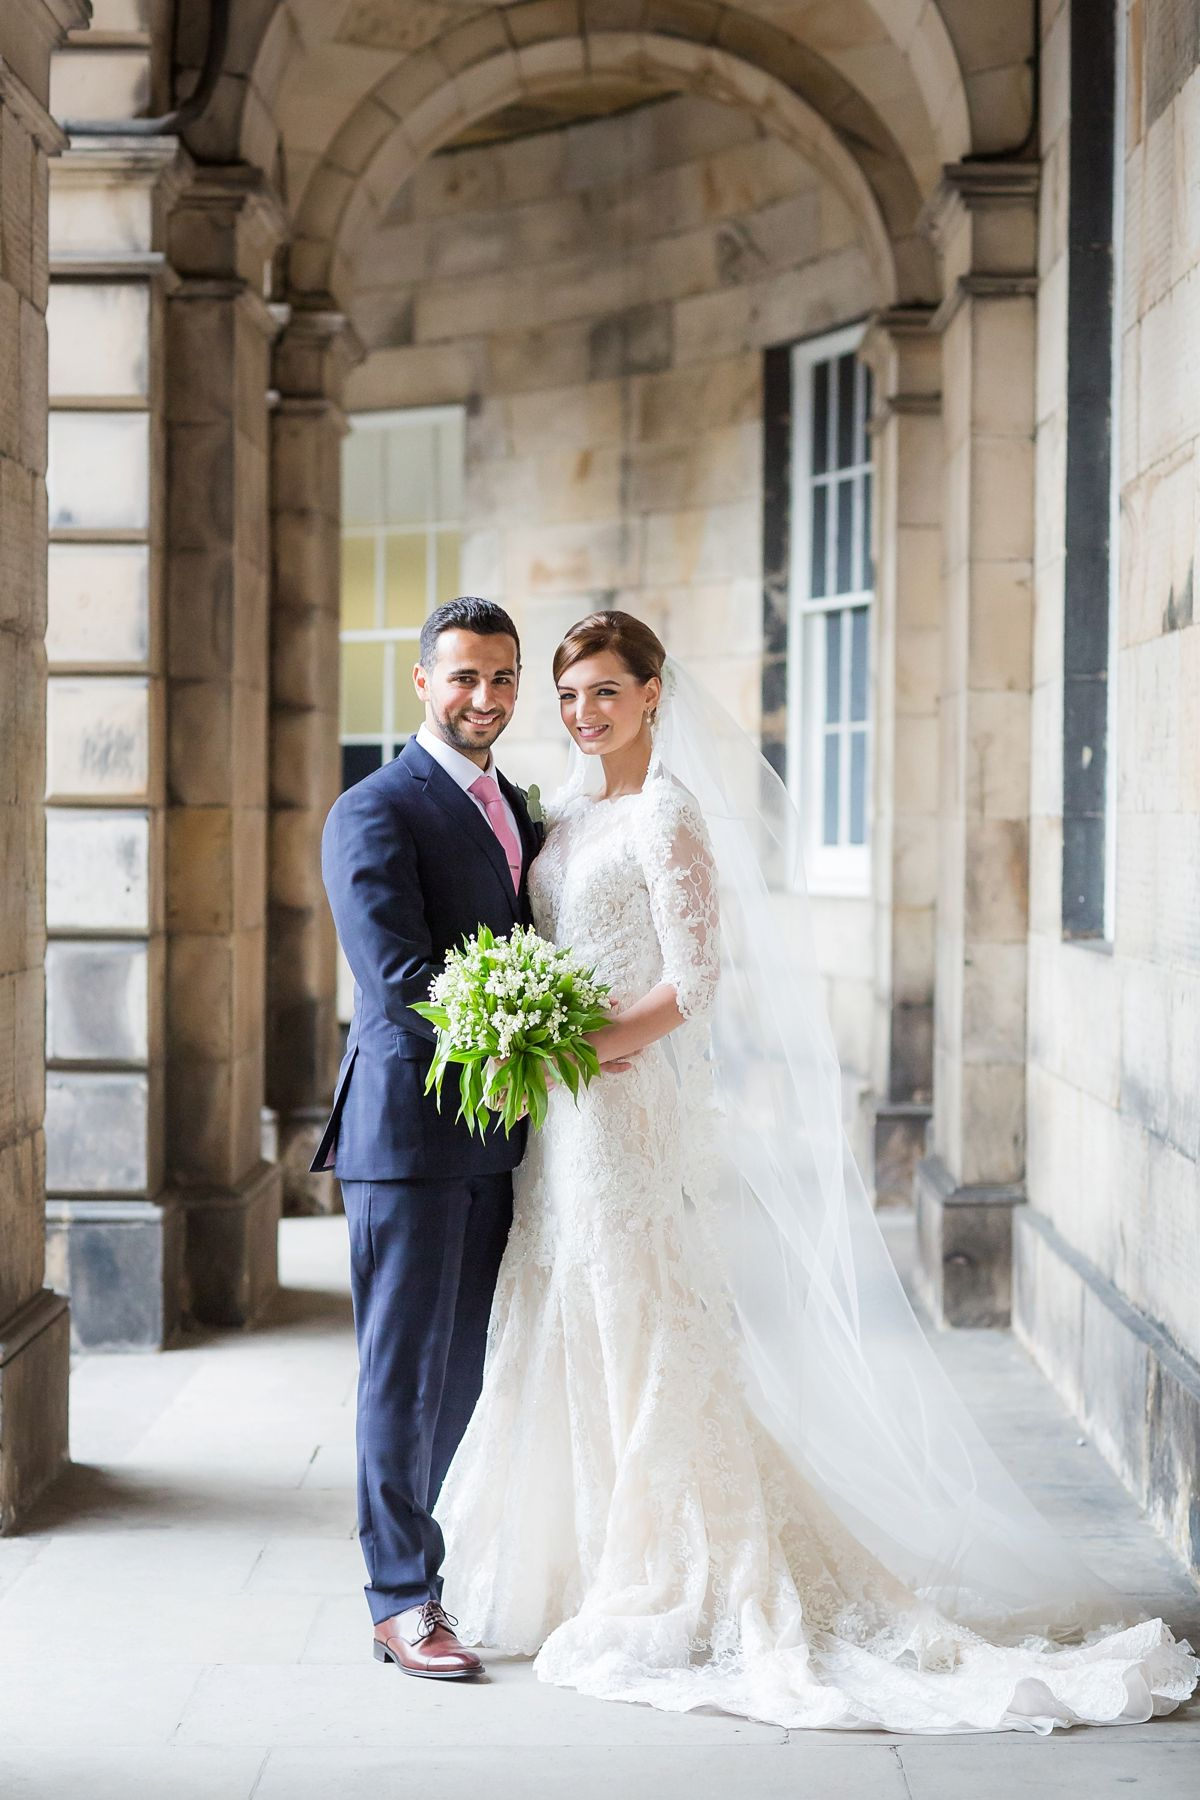 Annasul Y for a Book-Themed Scottish Library Wedding | Library ...